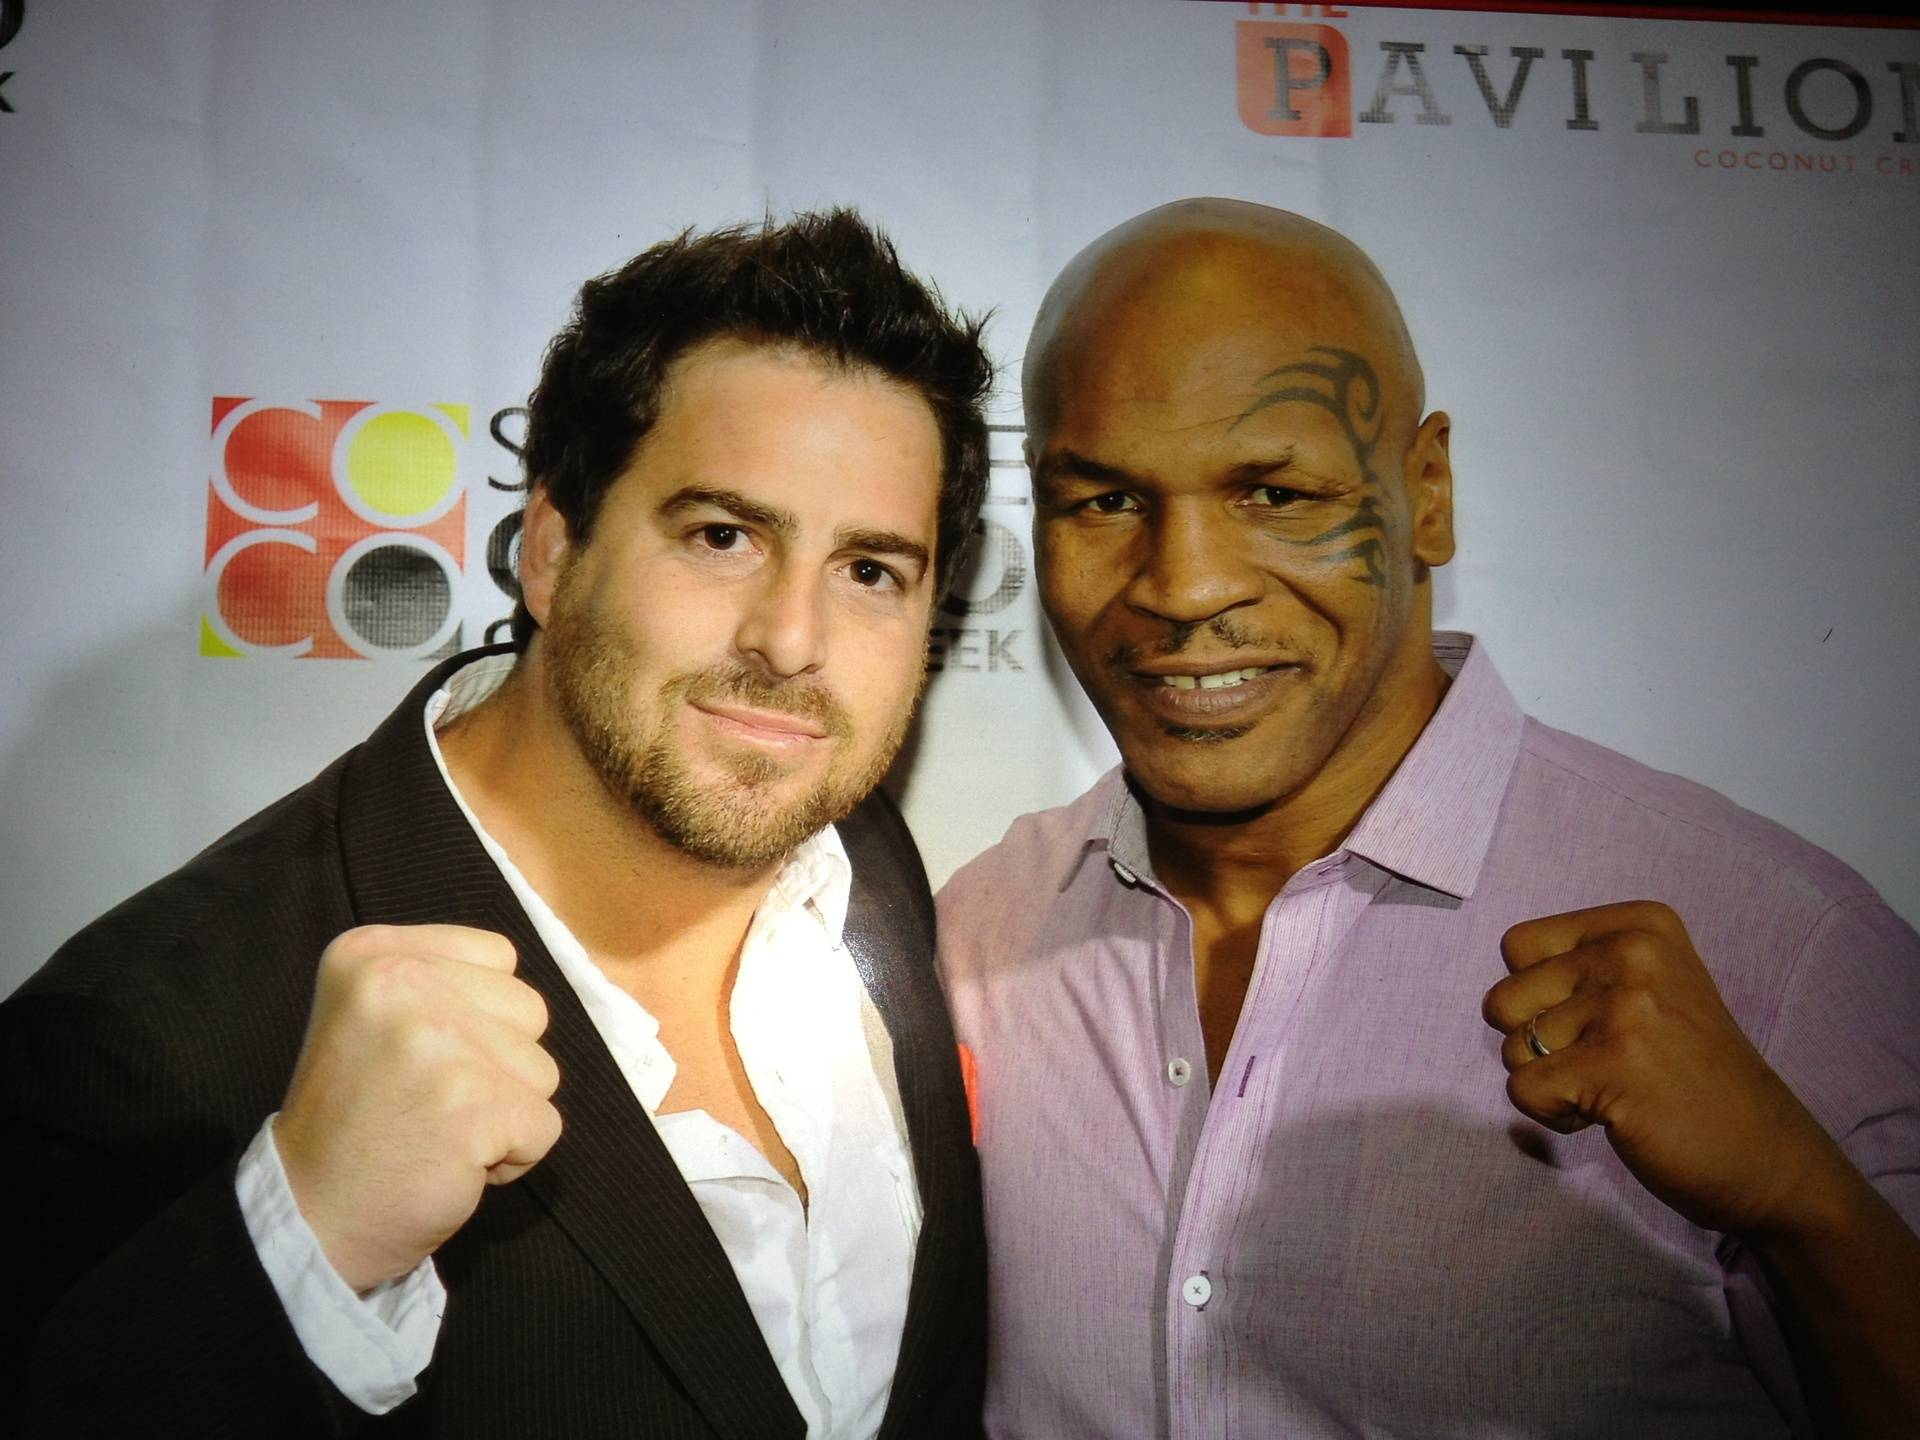 Evan Golden and Mike Tyson